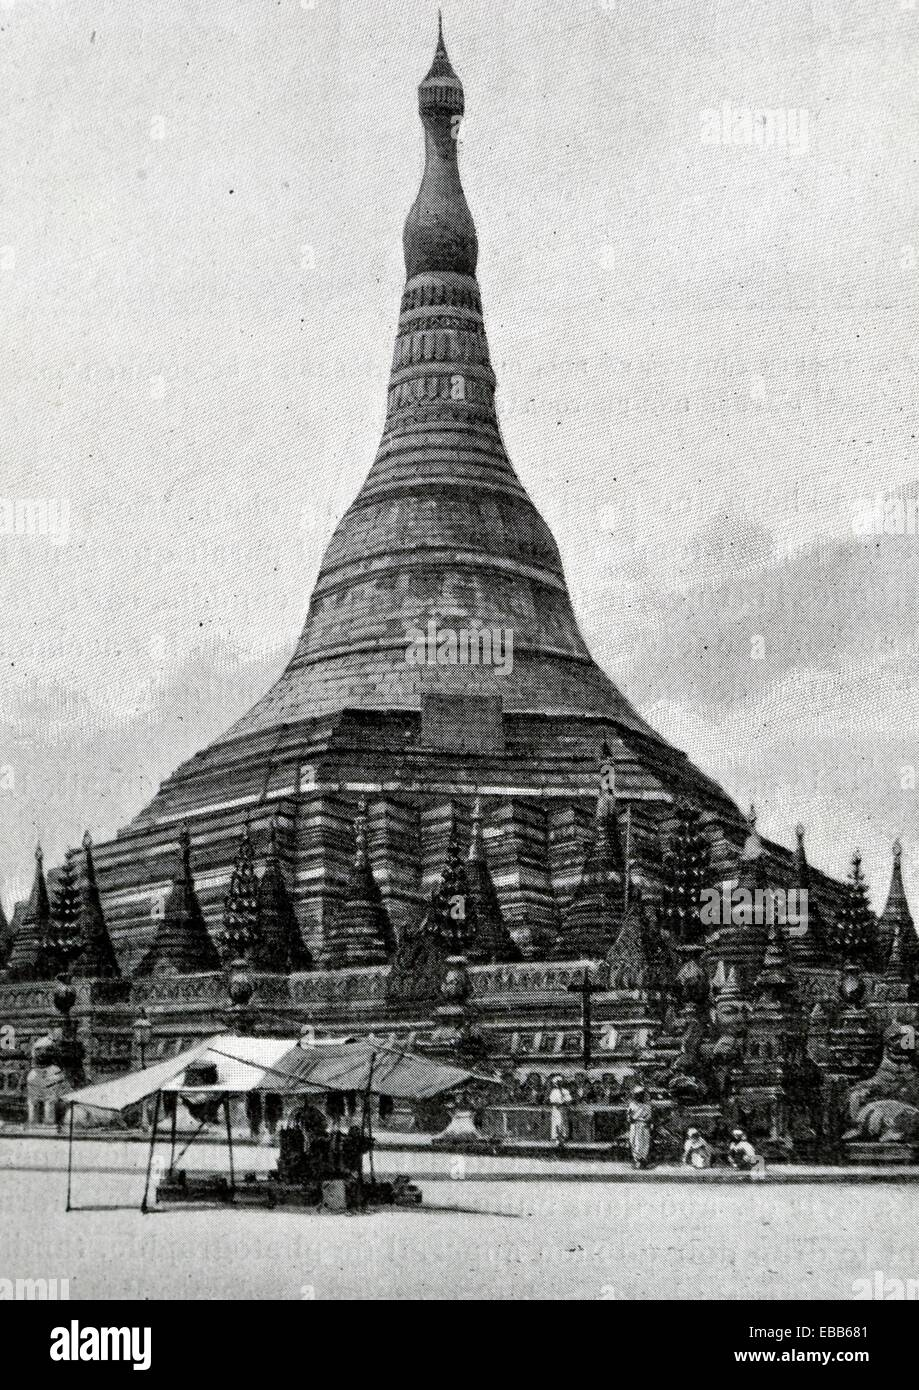 Schwemodo Pagoda at Pegu, entirely gilded edifice  It rises more than 100 meters, it sides, 50 meters wide, are - Stock Image